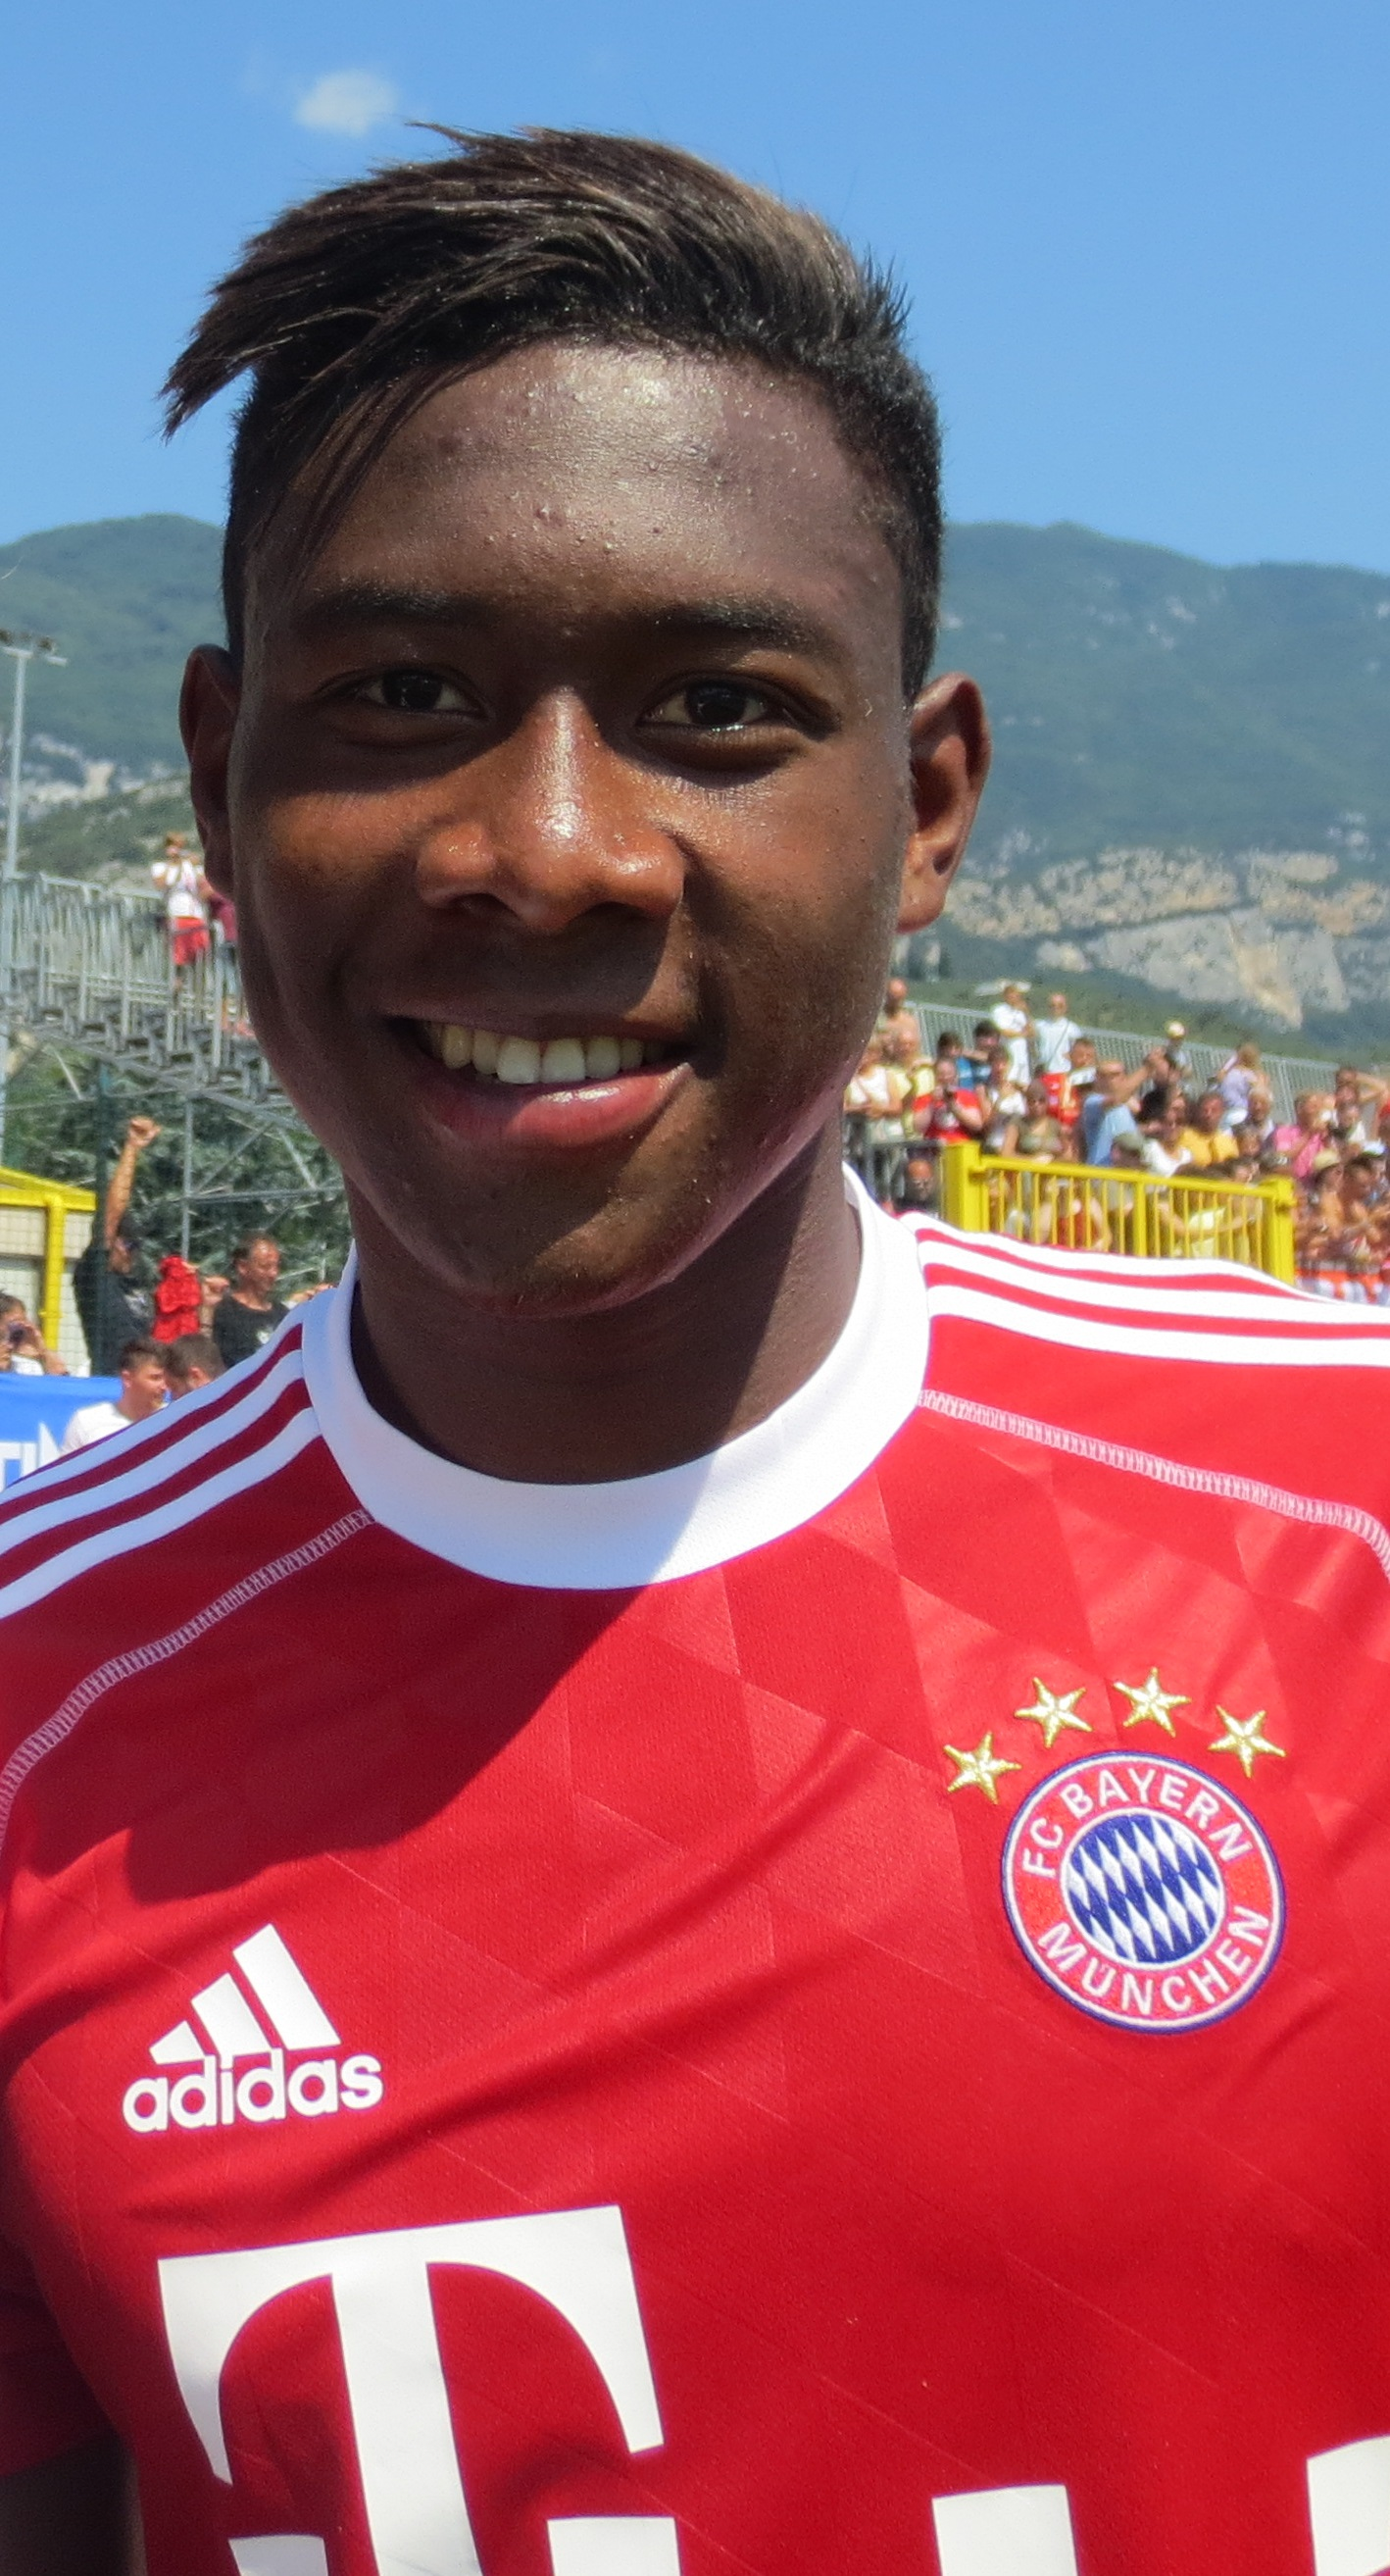 File:David Alaba 2013.JPG - Wikimedia Commons